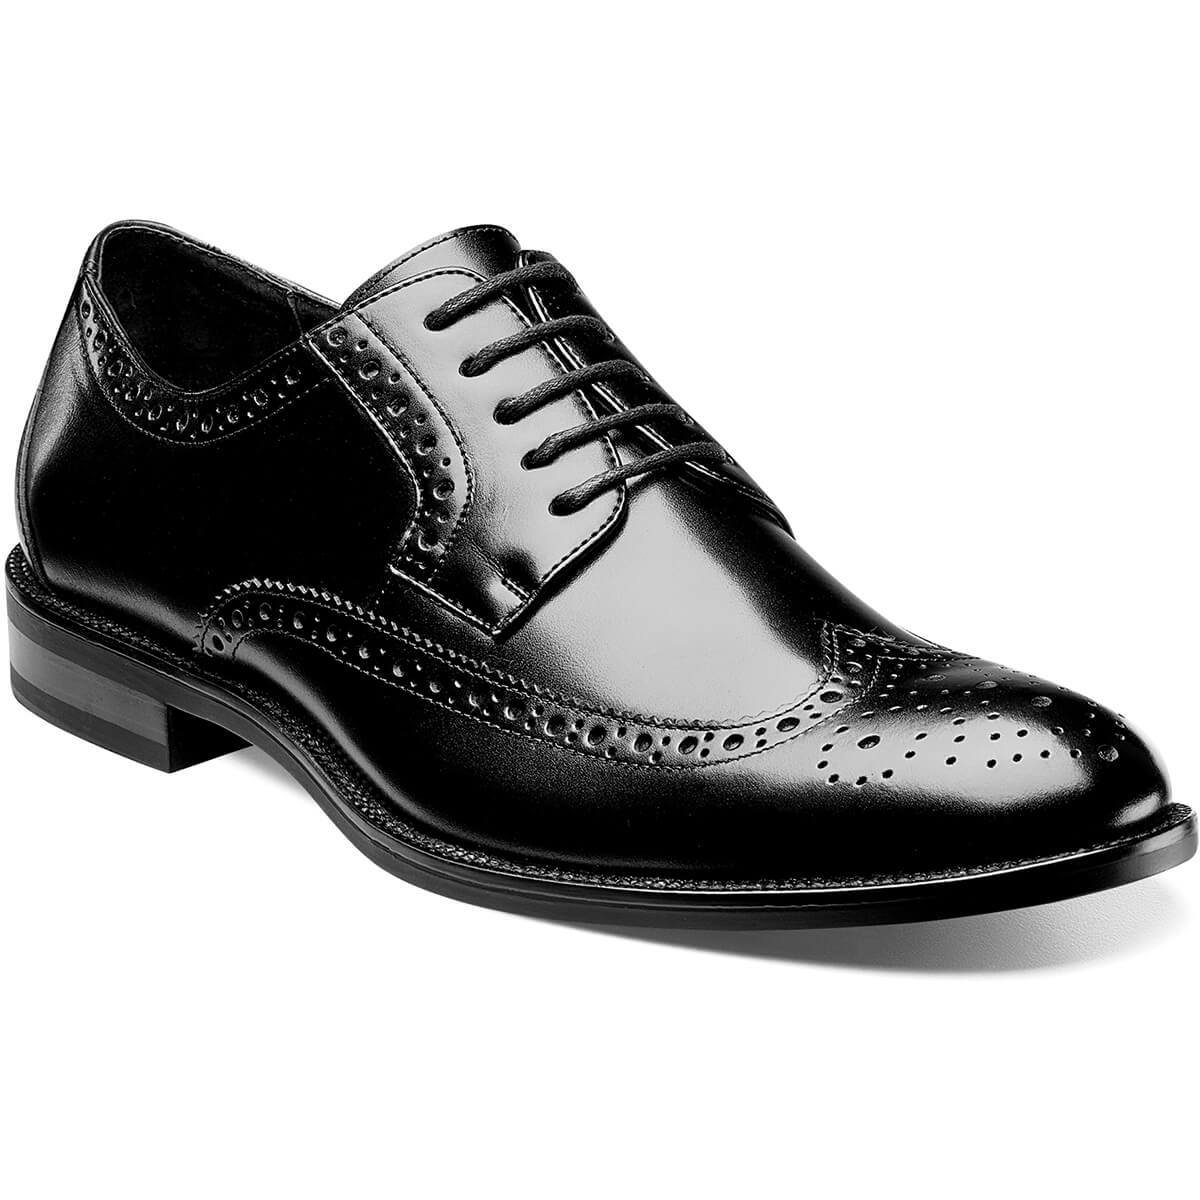 Garrison Wingtip Oxford Shoes - Dapperfam.com